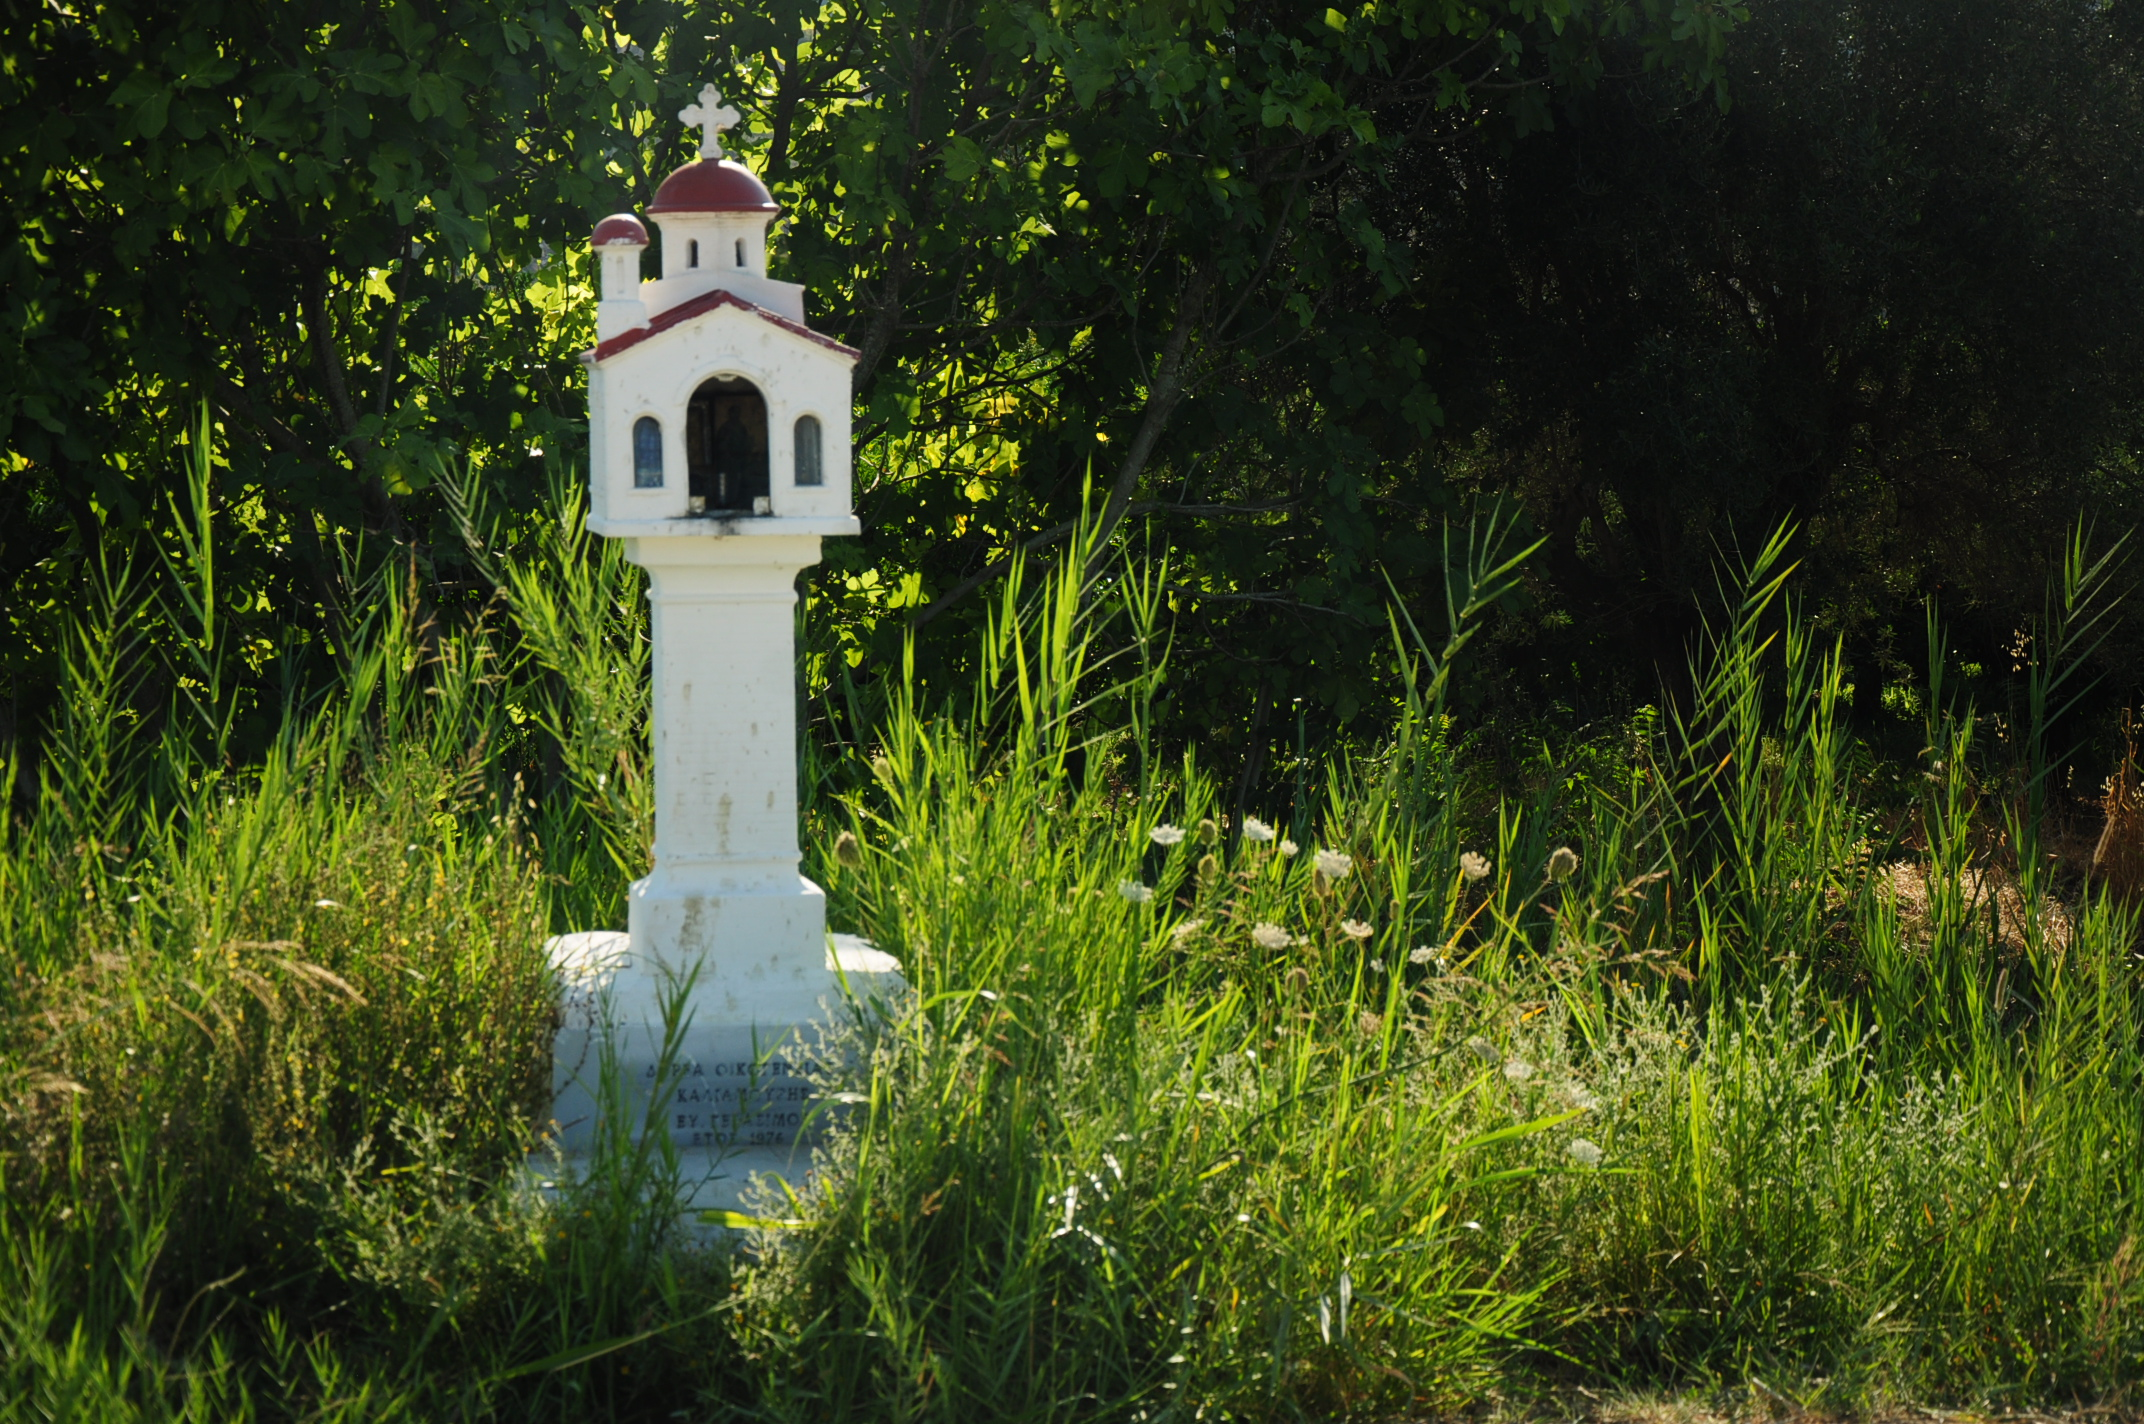 Miniature church by the road